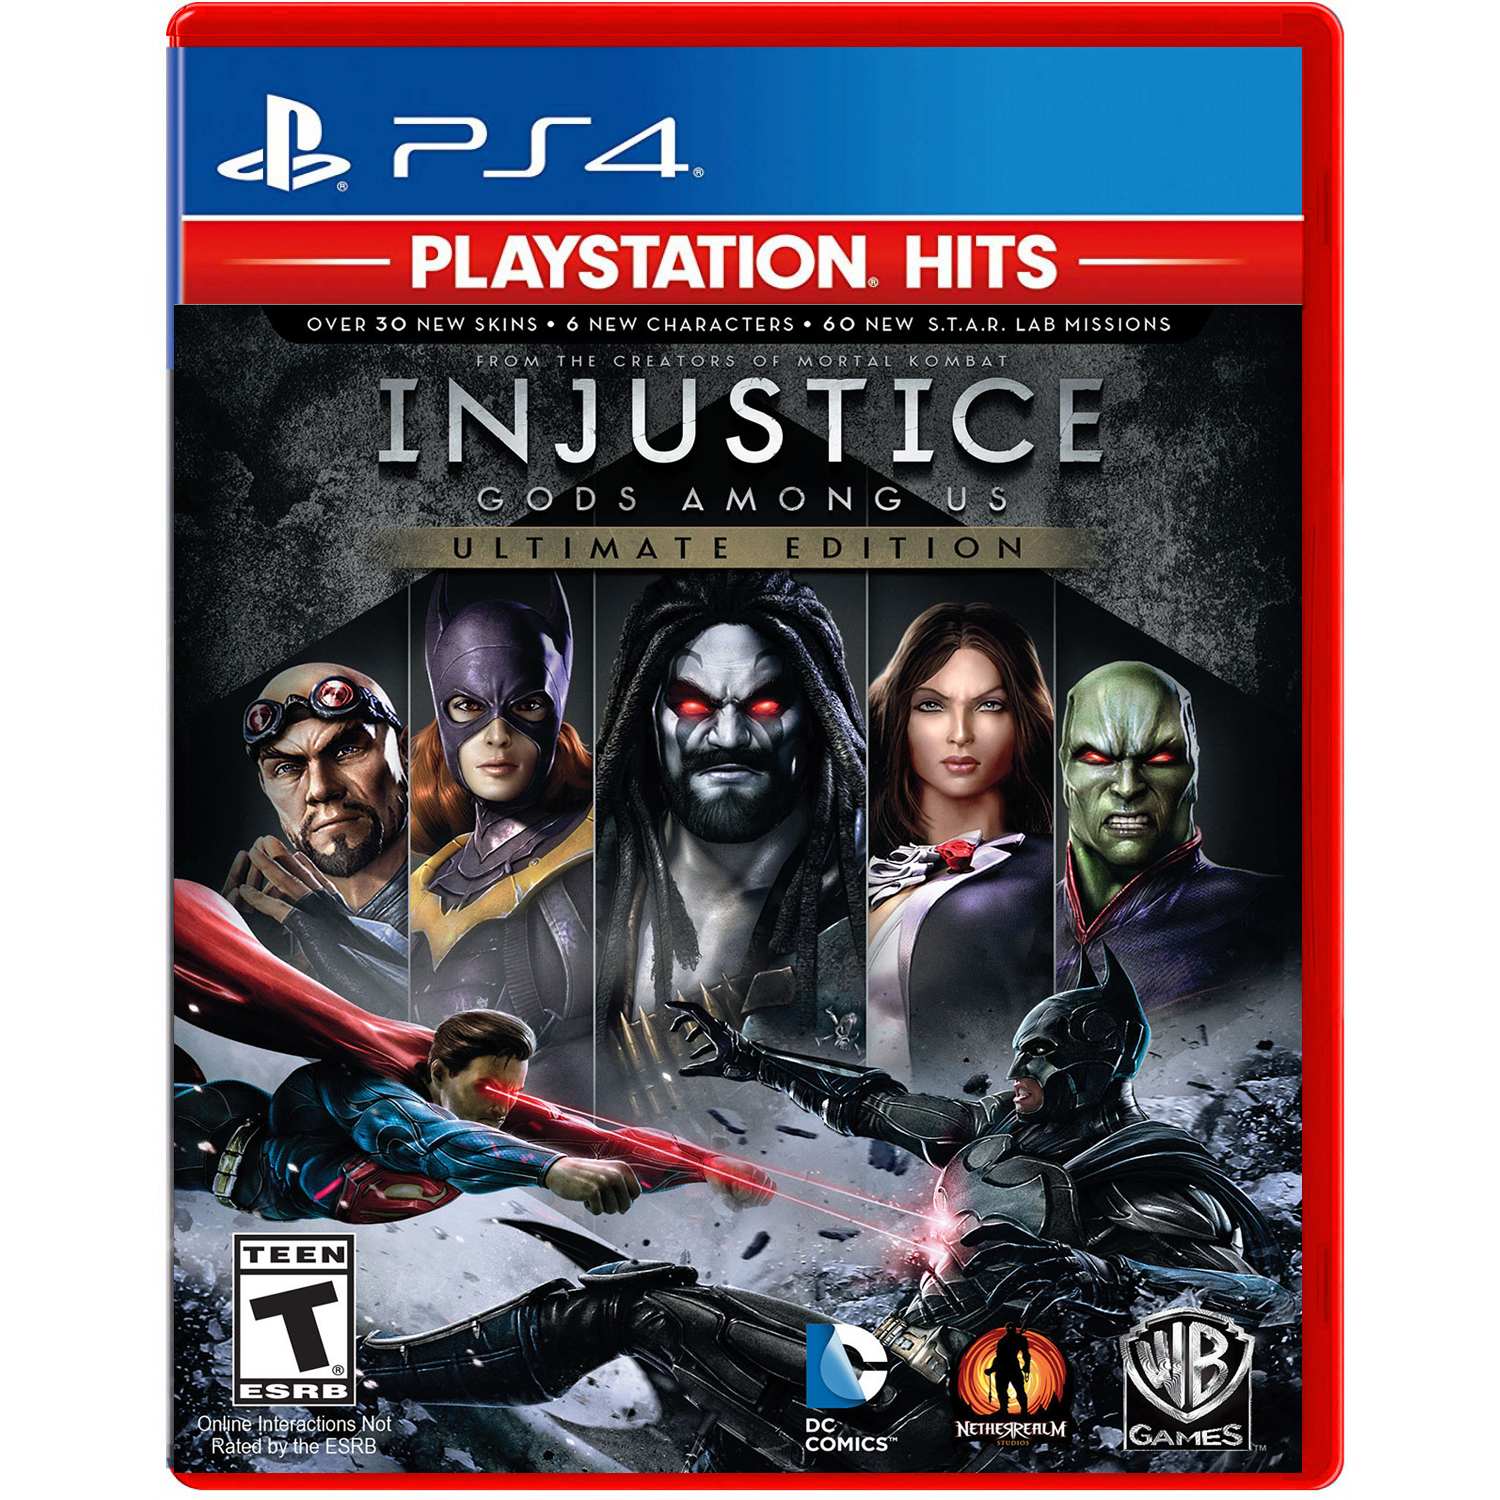 Playstation Hits Injustice Gods Among Us Ultimate